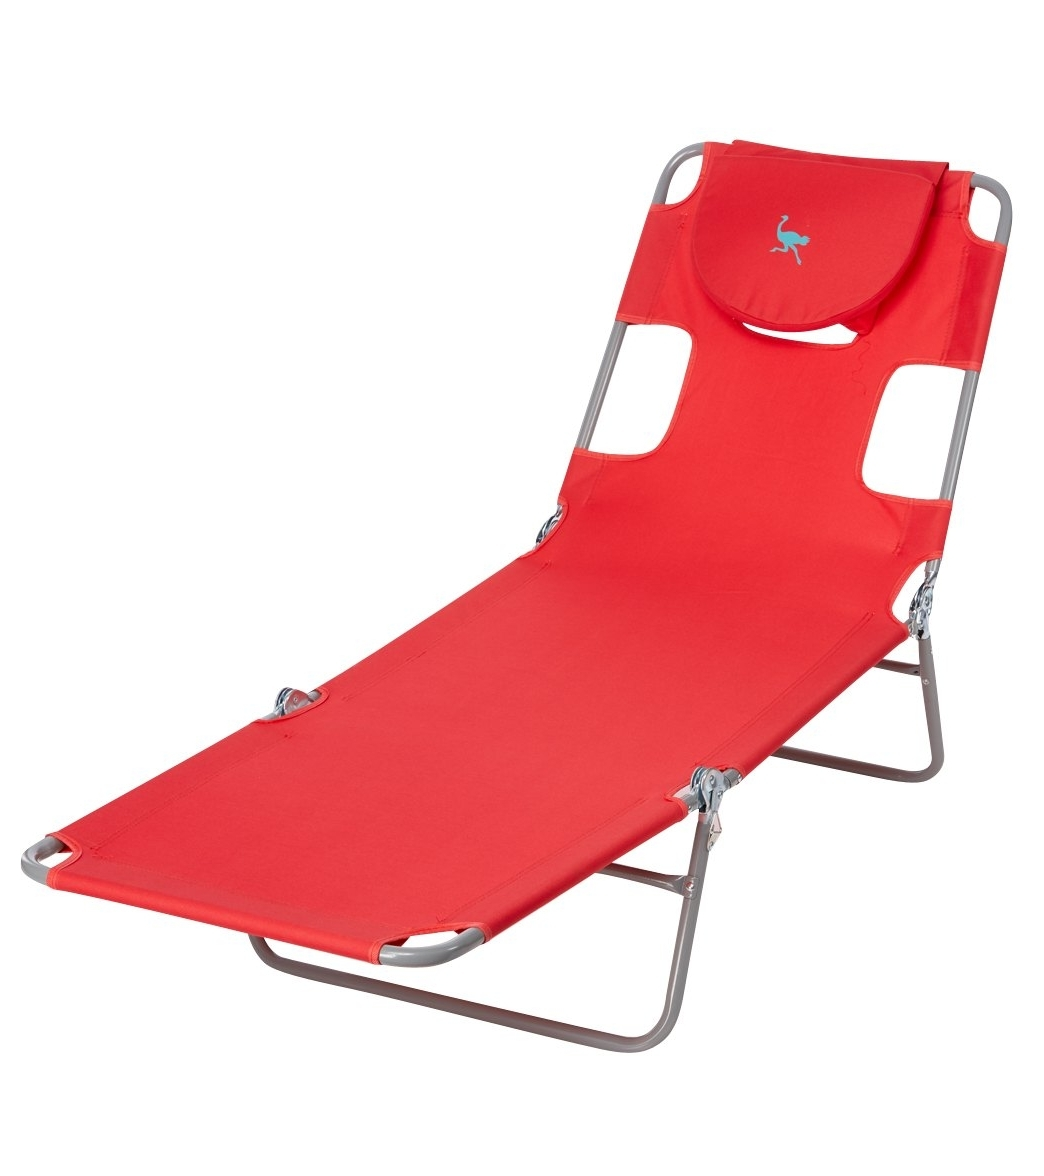 Ostrich Face Down Chaise Lounge At Swimoutlet – Free Shipping With Widely Used Chaise Lounge Chairs With Face Hole (View 12 of 15)